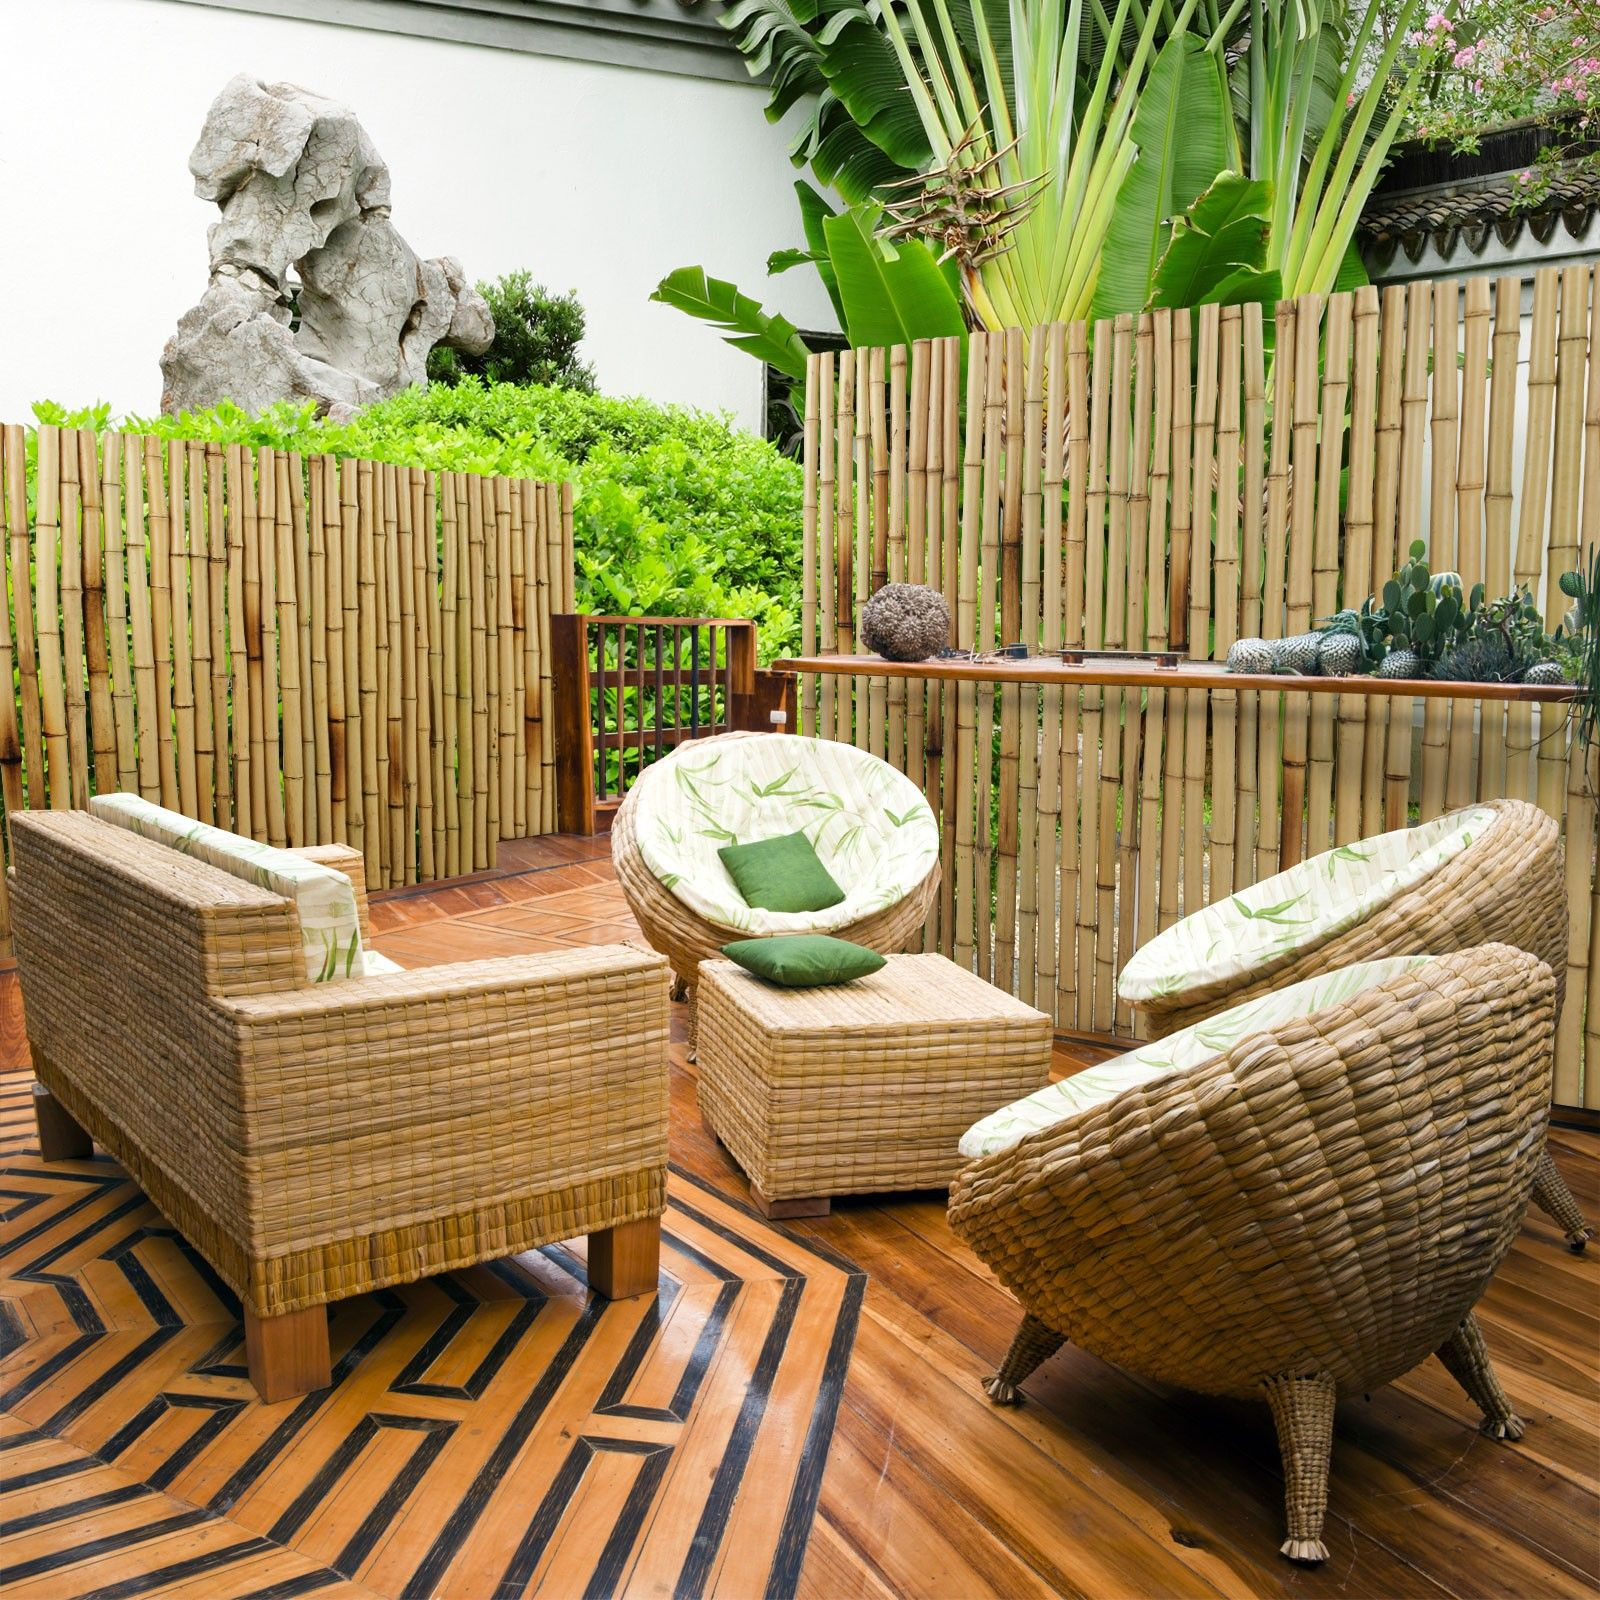 bambus sichtschutz natur 3 gr en phyllostachys glauca sichtschutz garten. Black Bedroom Furniture Sets. Home Design Ideas